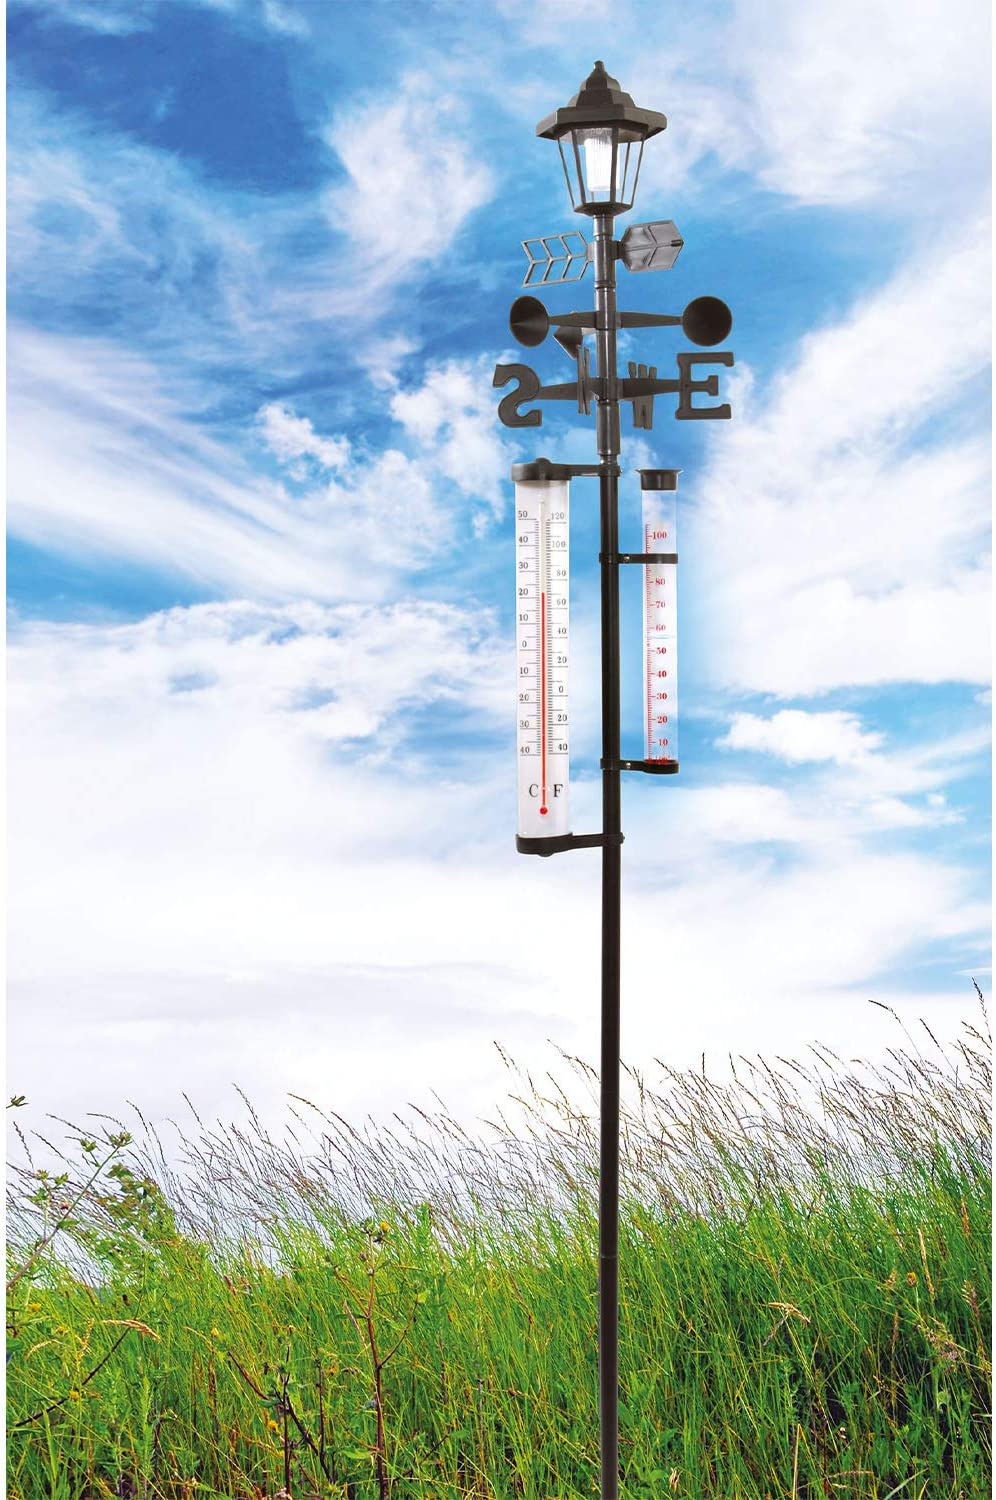 Burwells 5-in-1 Garden Weather Station with Solar Light Keep Track of The Weather Day and Night